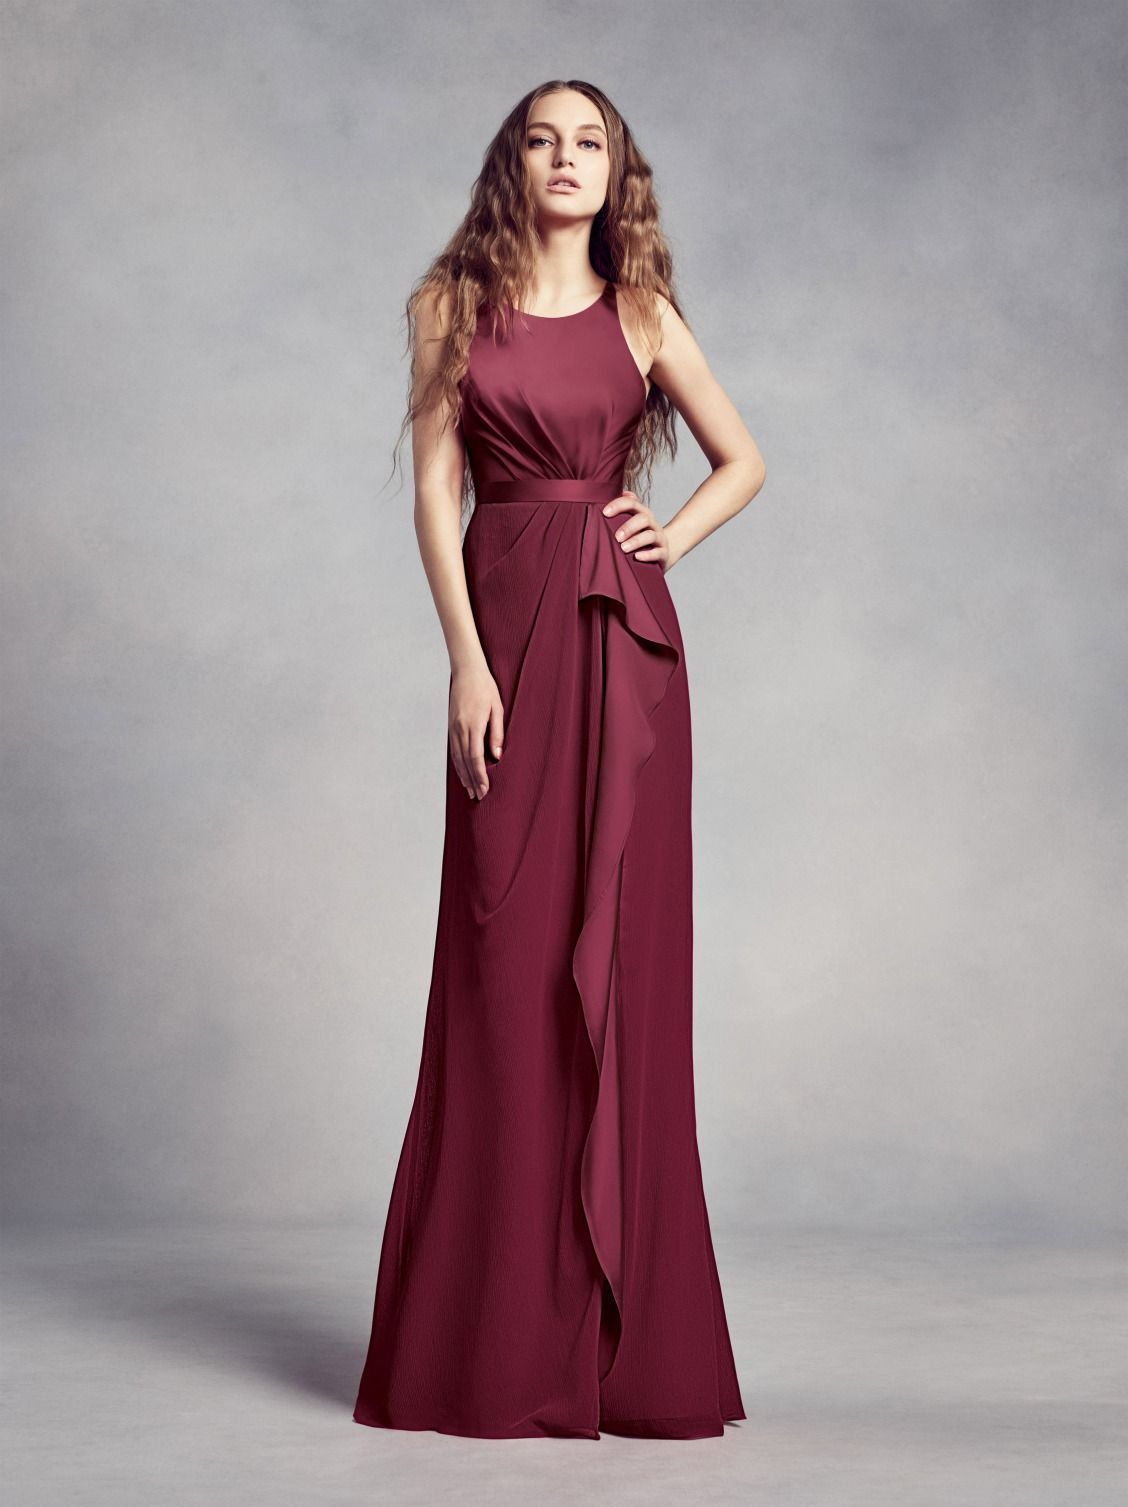 For Your Burgundy Wedding Wine Charmeuse And Chiffon Bridesmaid Dress With Ruffle Is Fit Any Venue This White By Vera At